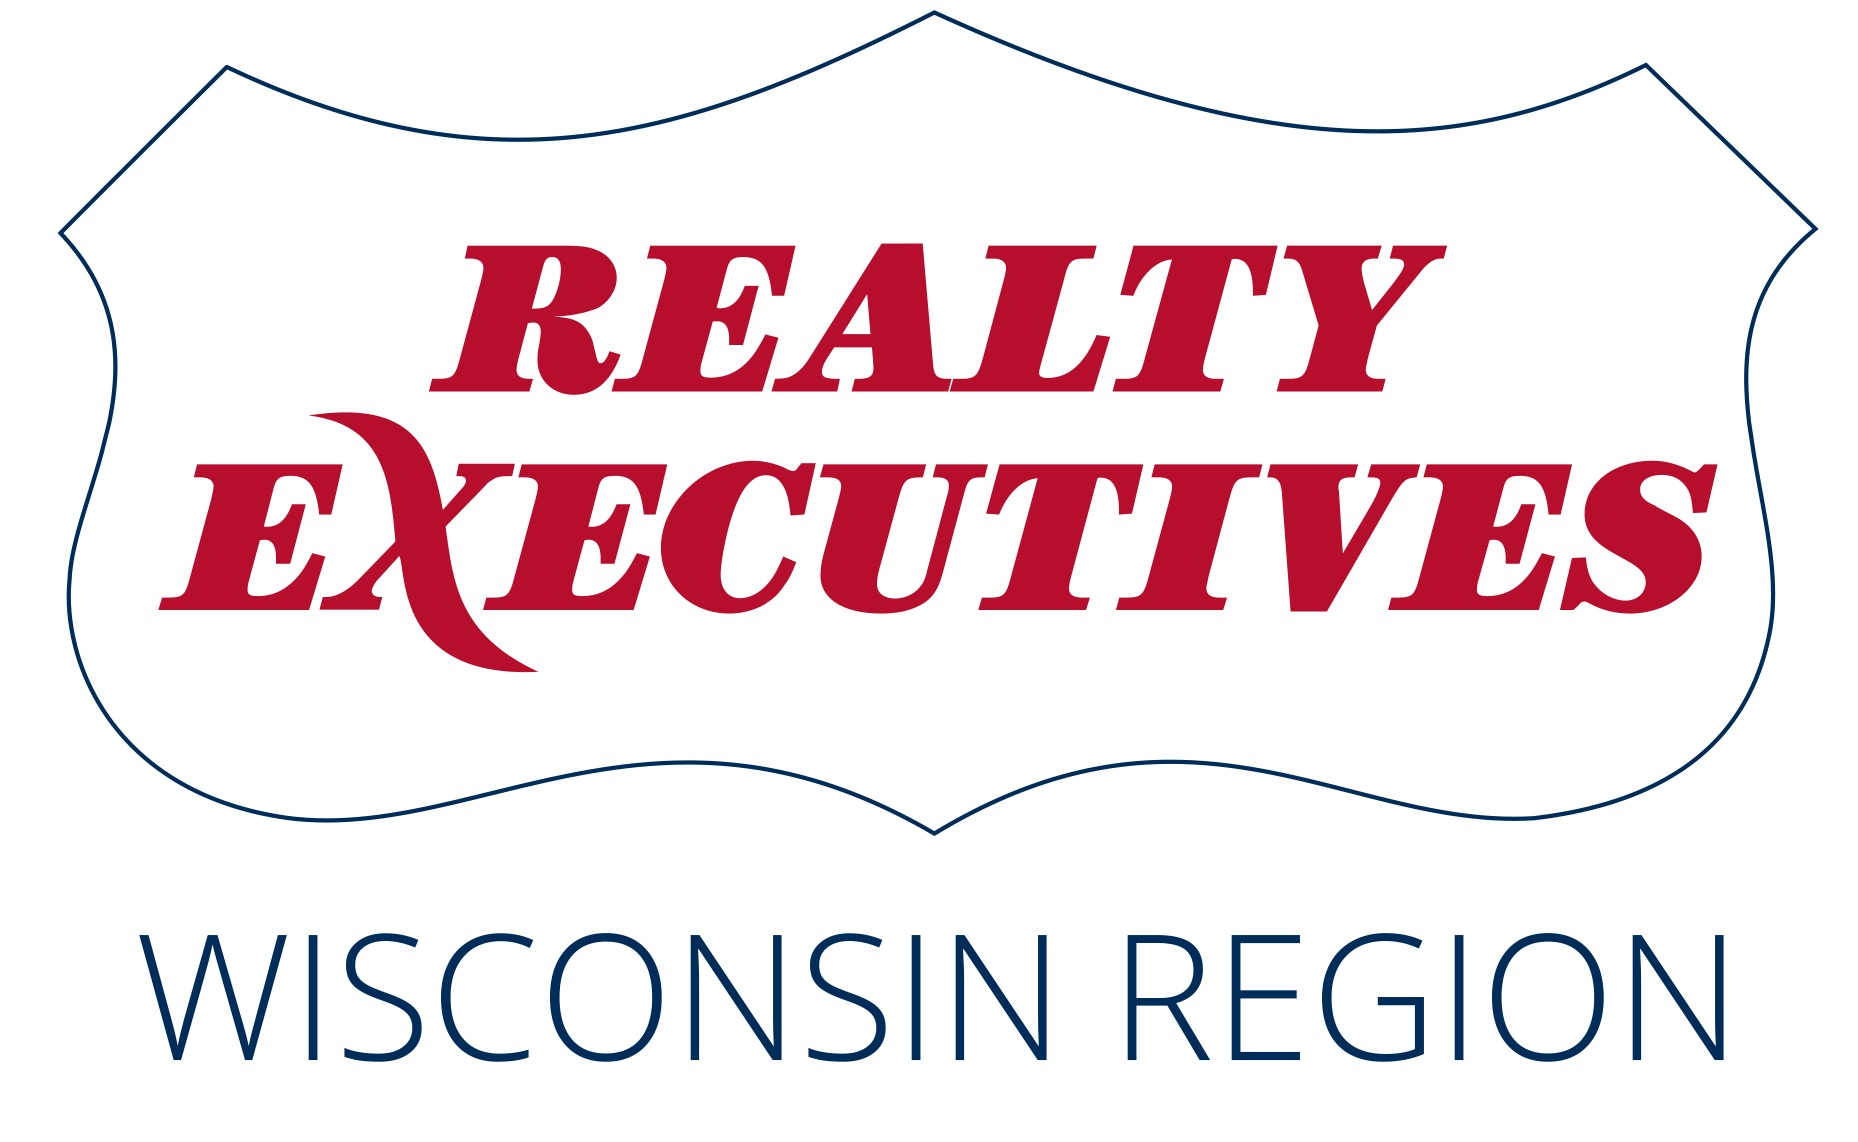 Realty Executives Regional Office (Cardinal)